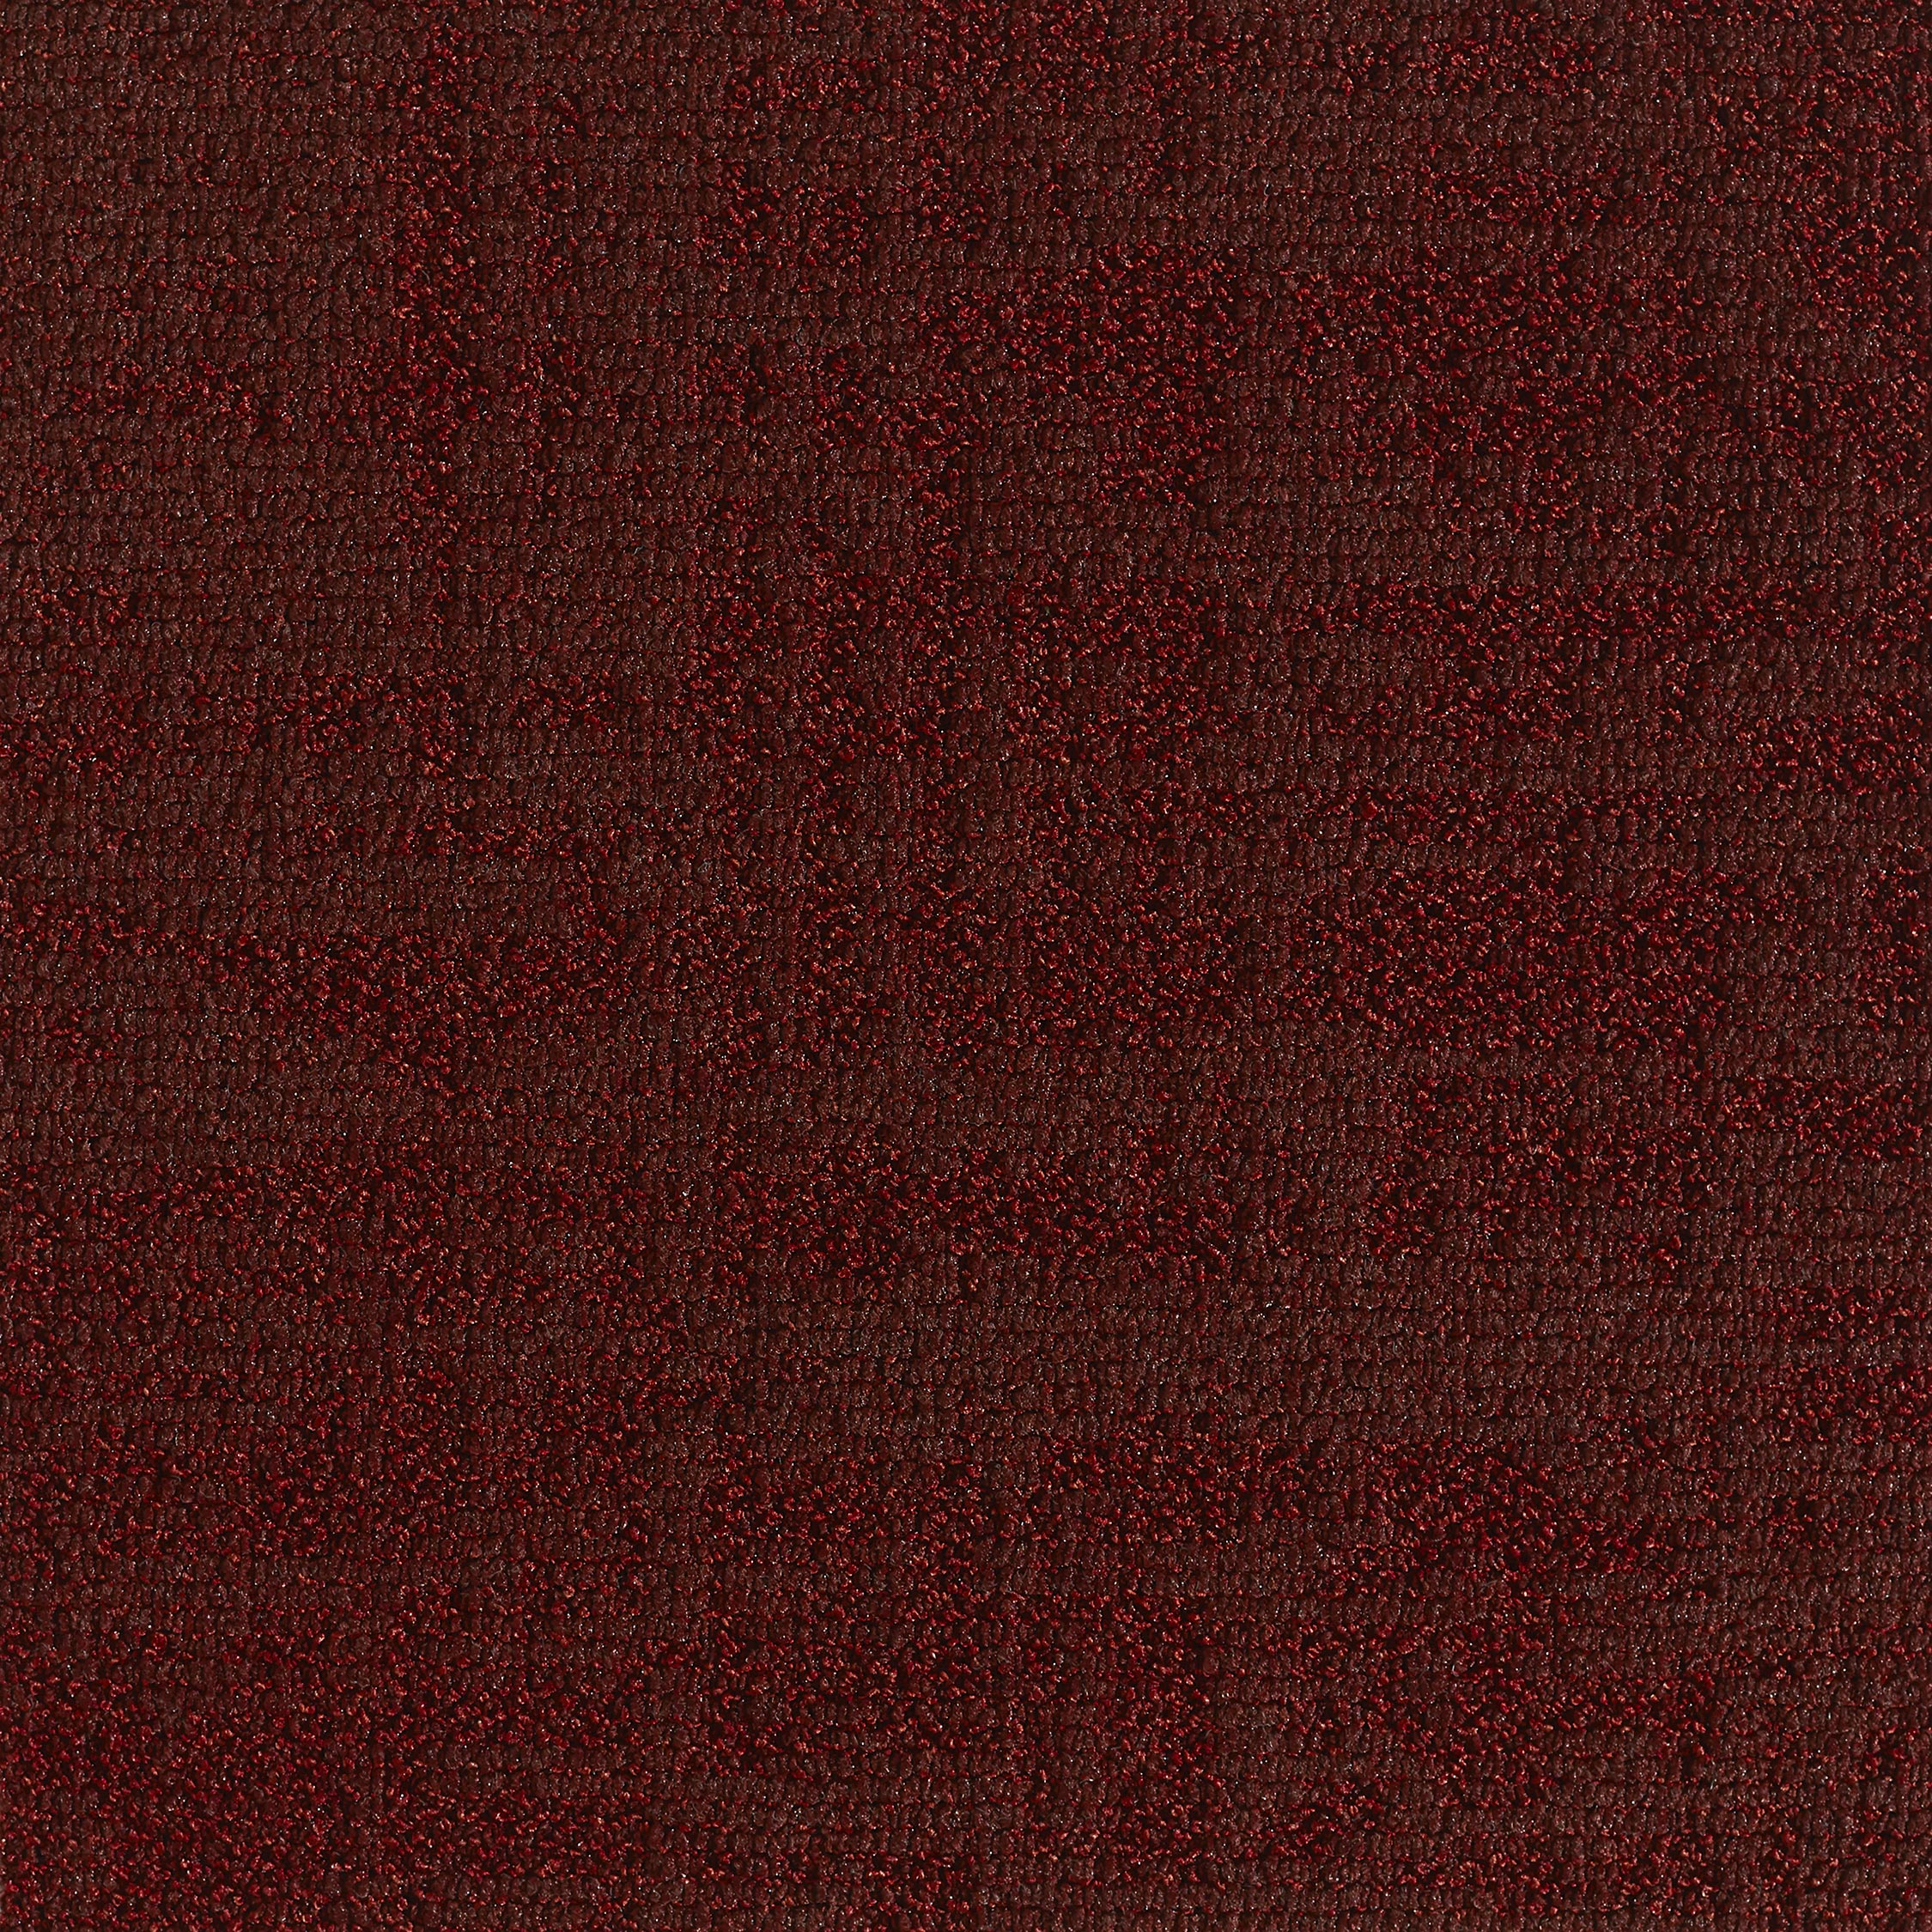 ReForm Mano ECT350 wine red